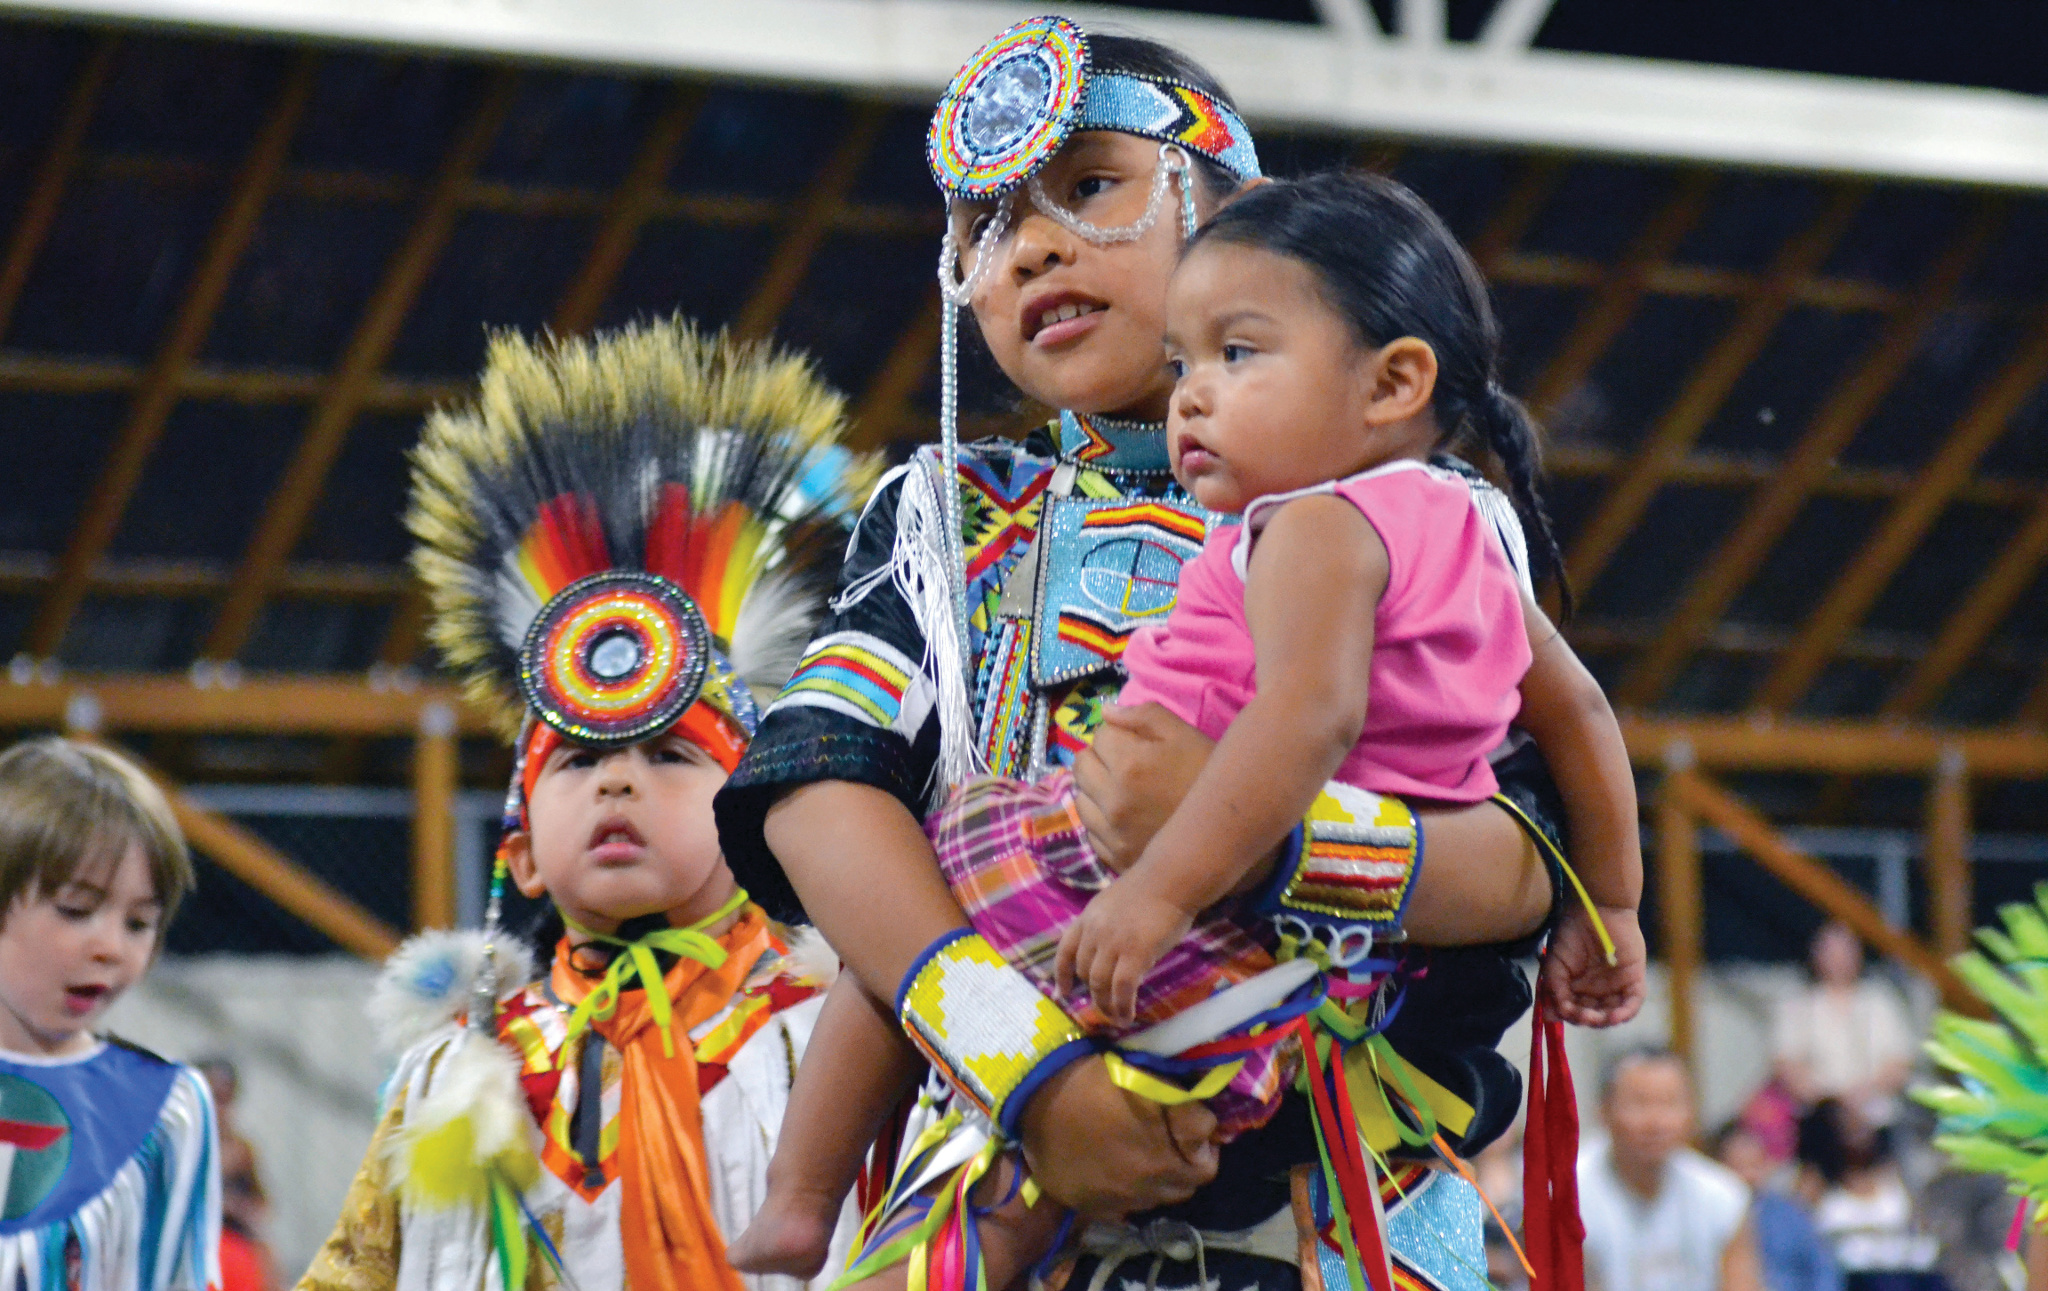 For American Indian Youth Traditional Culture Has Power